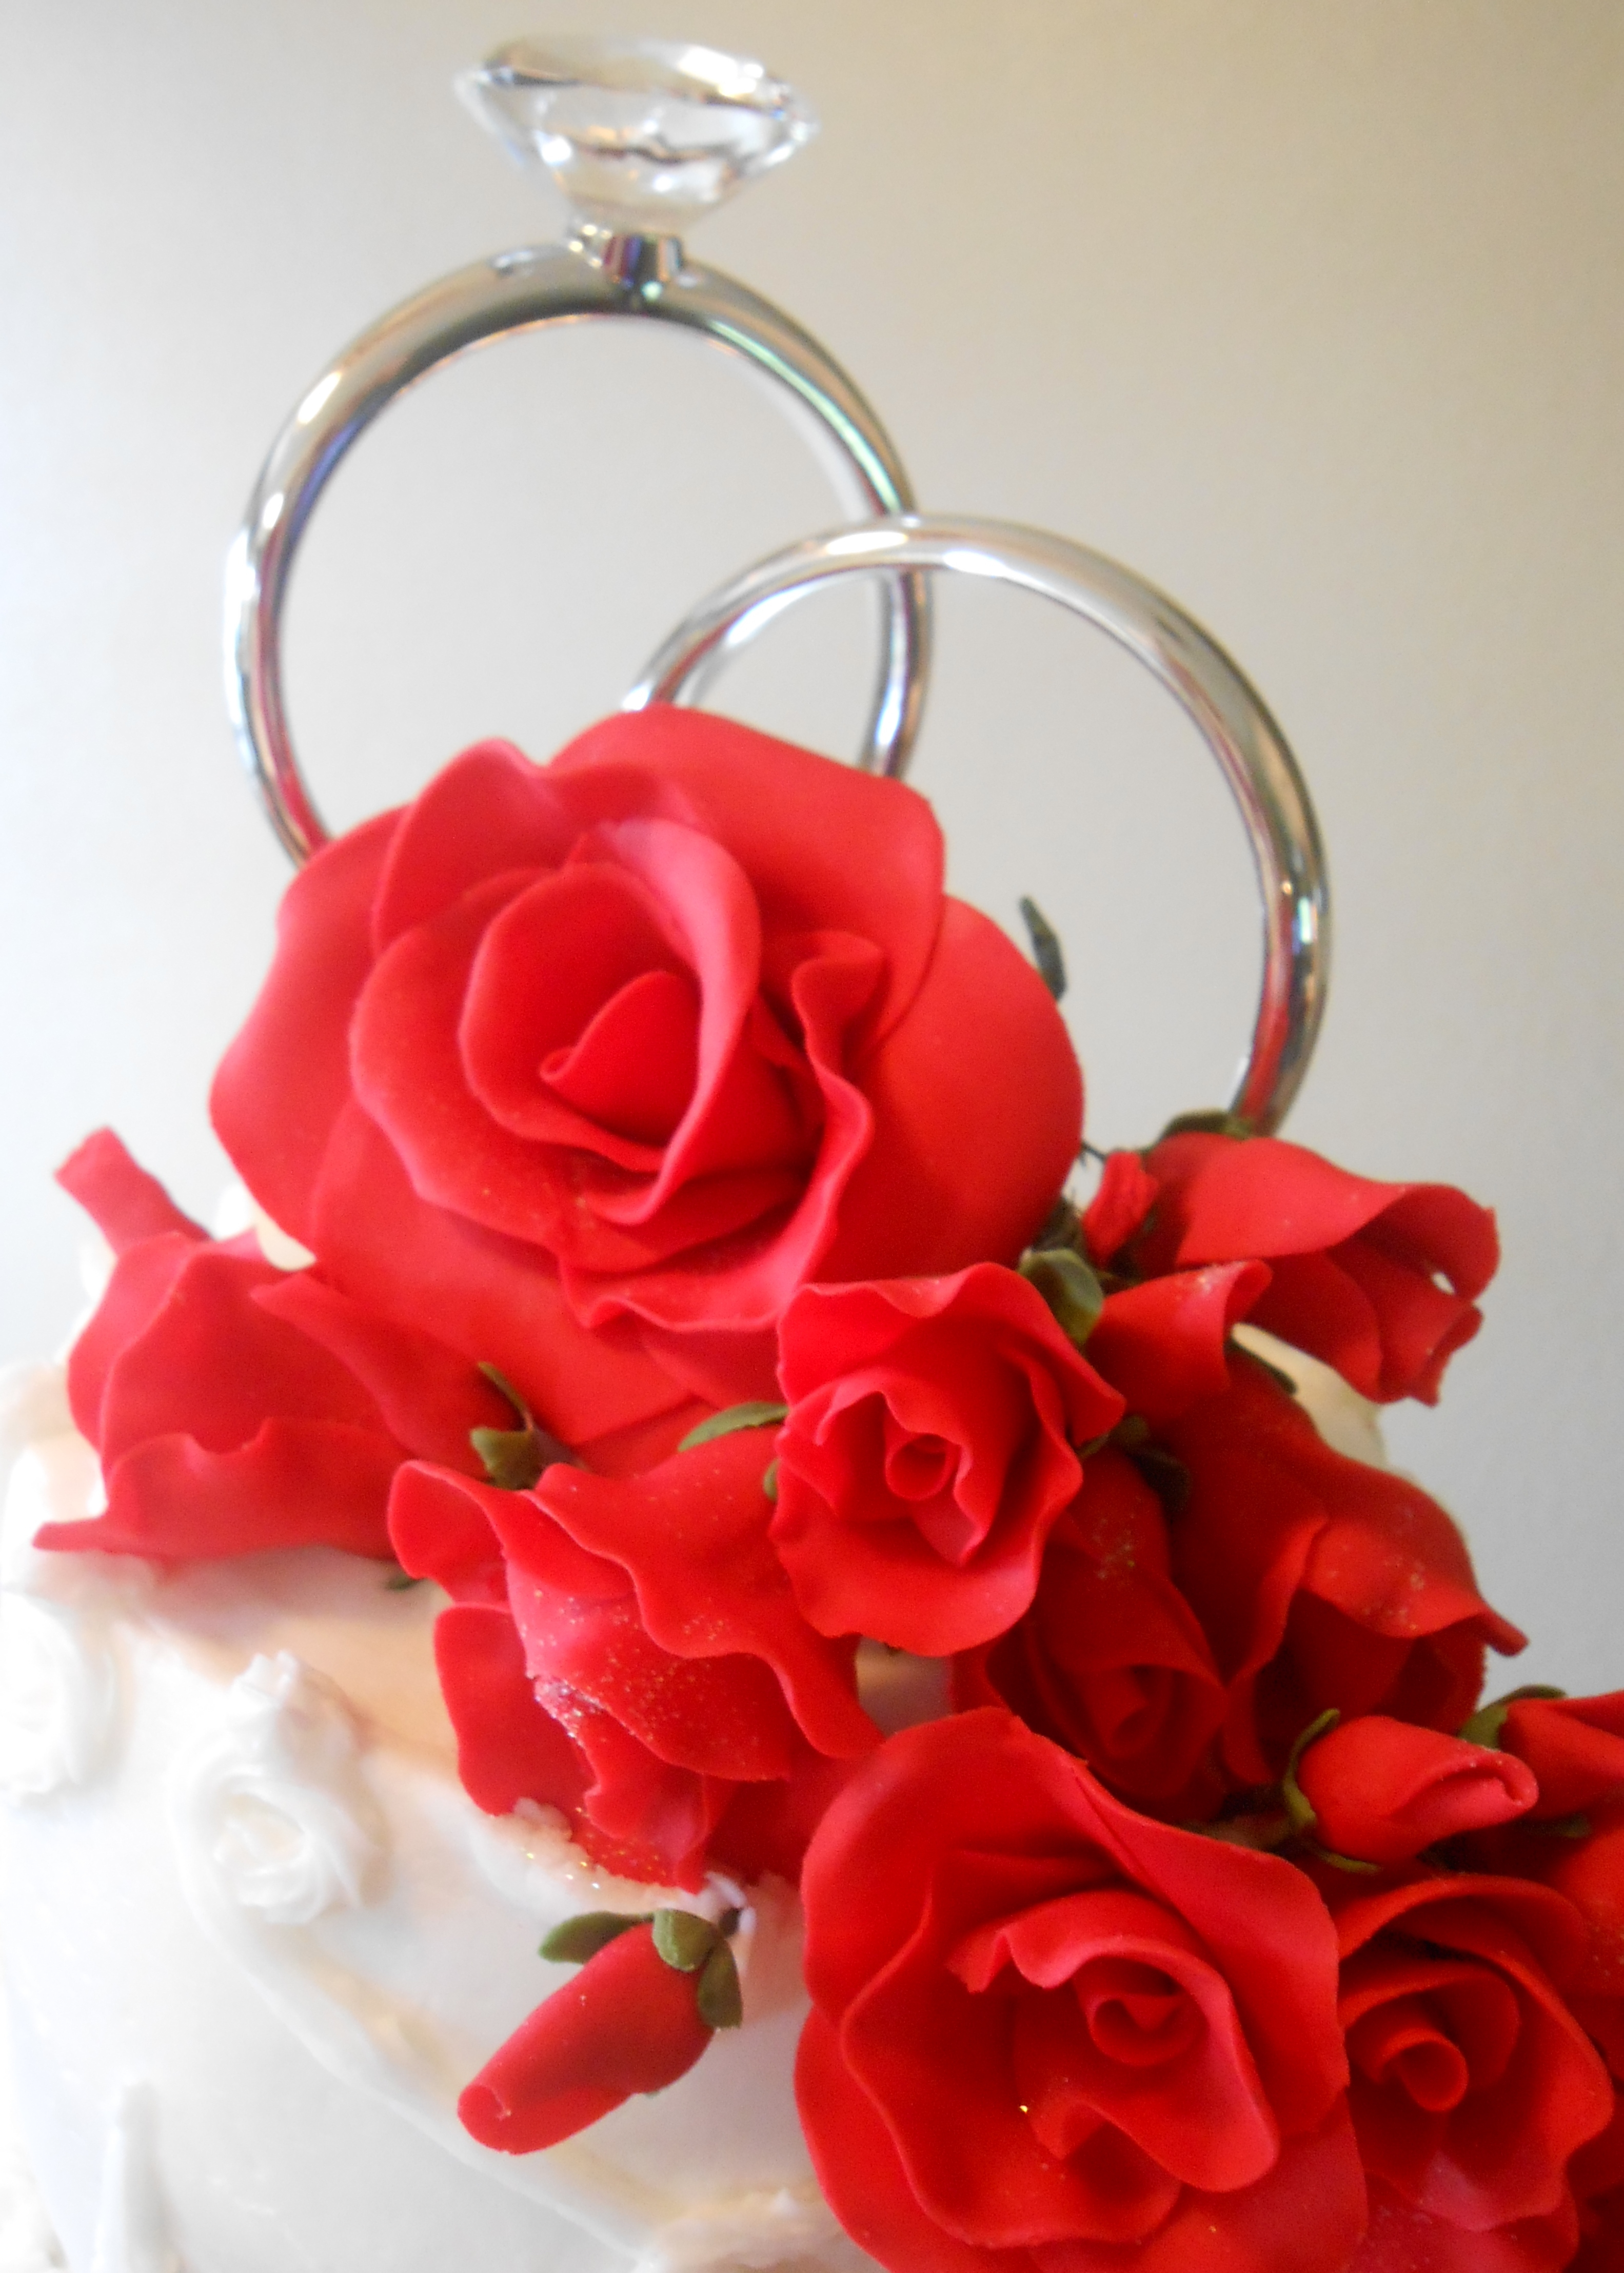 Red Roses Wedding Cake All Fondant Gumpaste Was White Vanilla With Fresh Strawberry Filling And Simple Buttercream